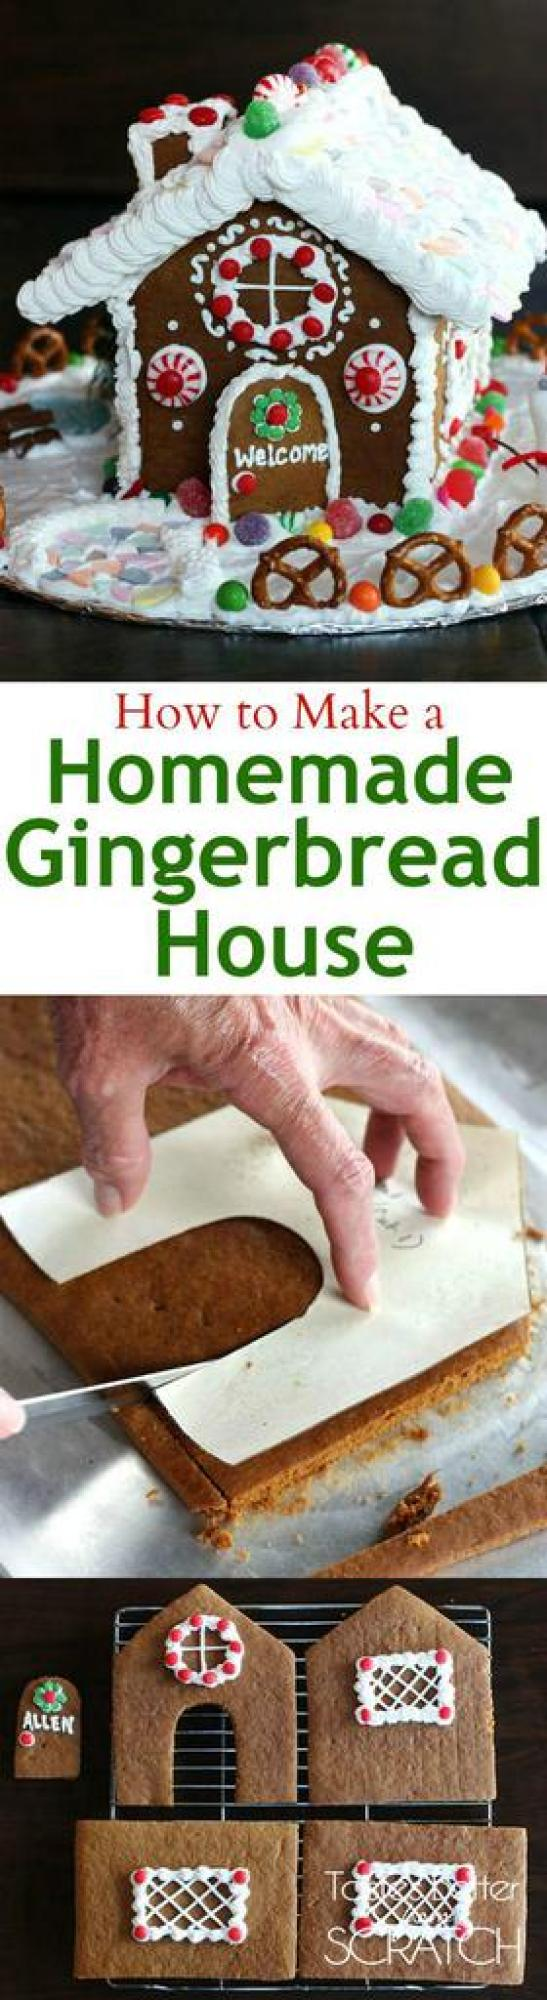 Recipe and photo tutorial for making a homemade gingerbread house!